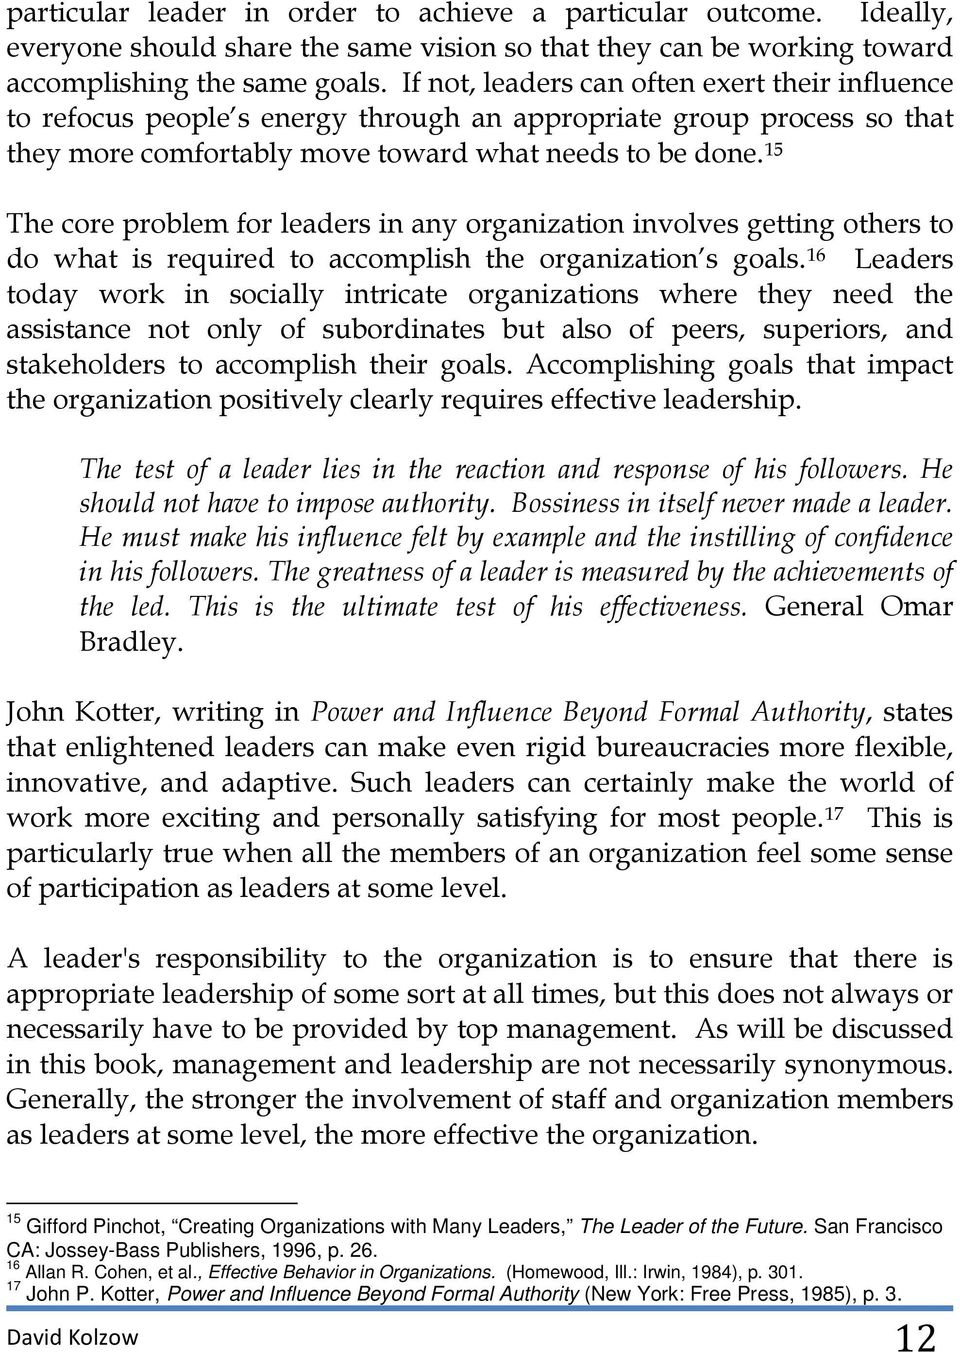 15 The core problem for leaders in any organization involves getting others to do what is required to accomplish the organization s goals.